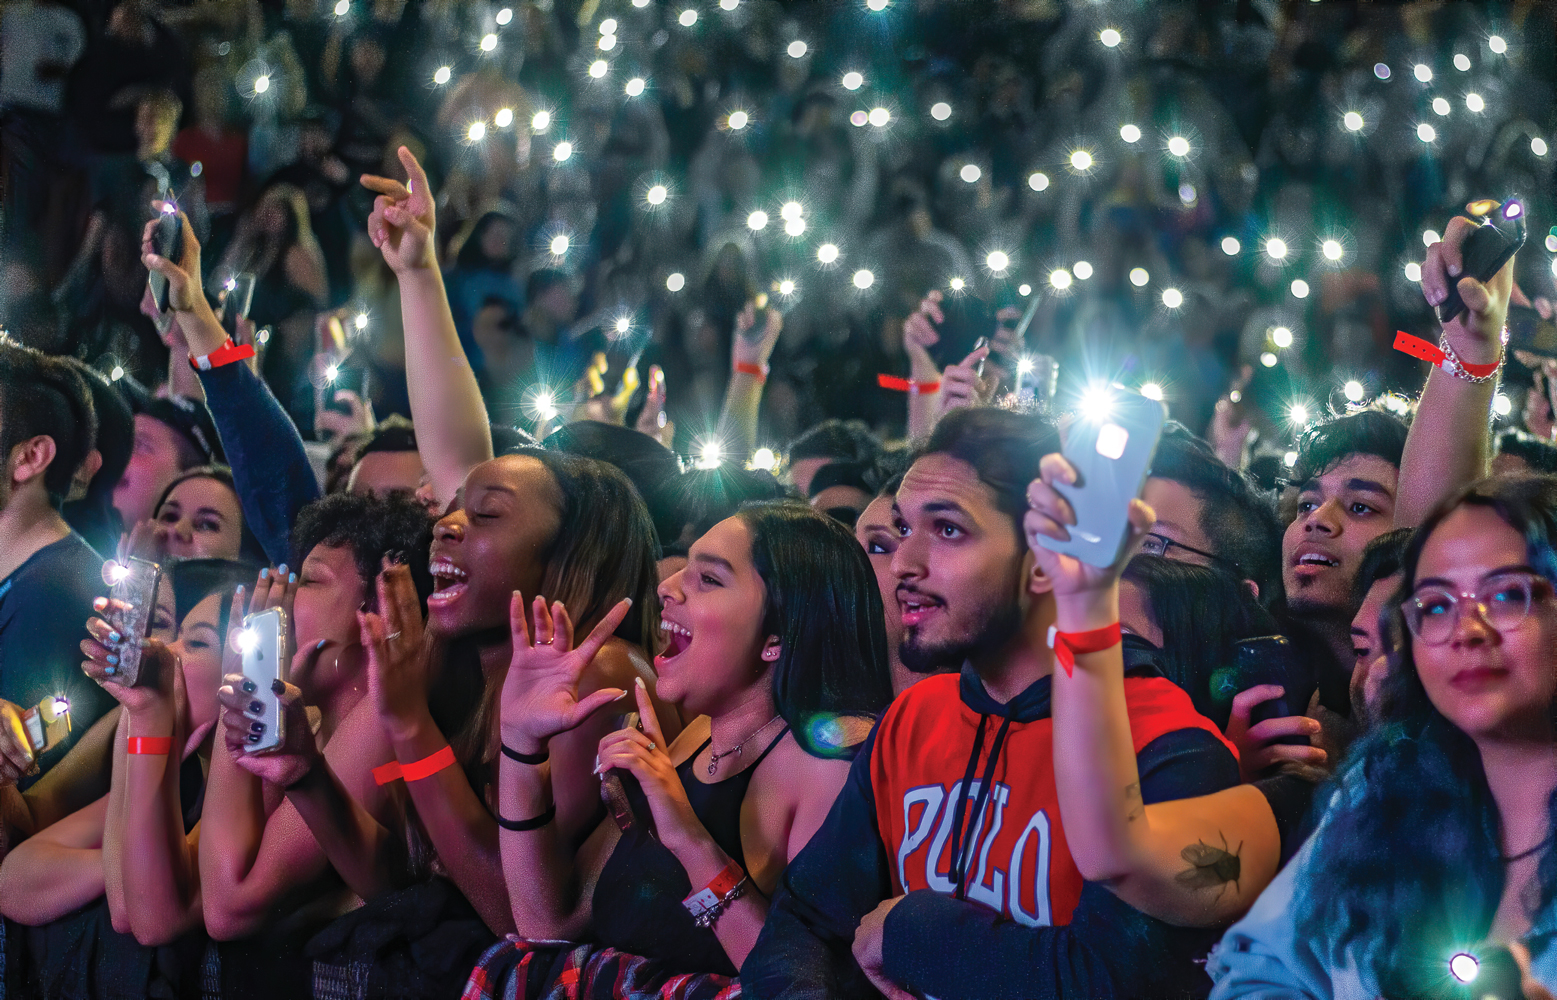 Annual Brookfest concert Spring 2019: The event continues the University's long history of bringing up-and-coming musical talent to campus. Island Federal Arena, Anastasia Kobus